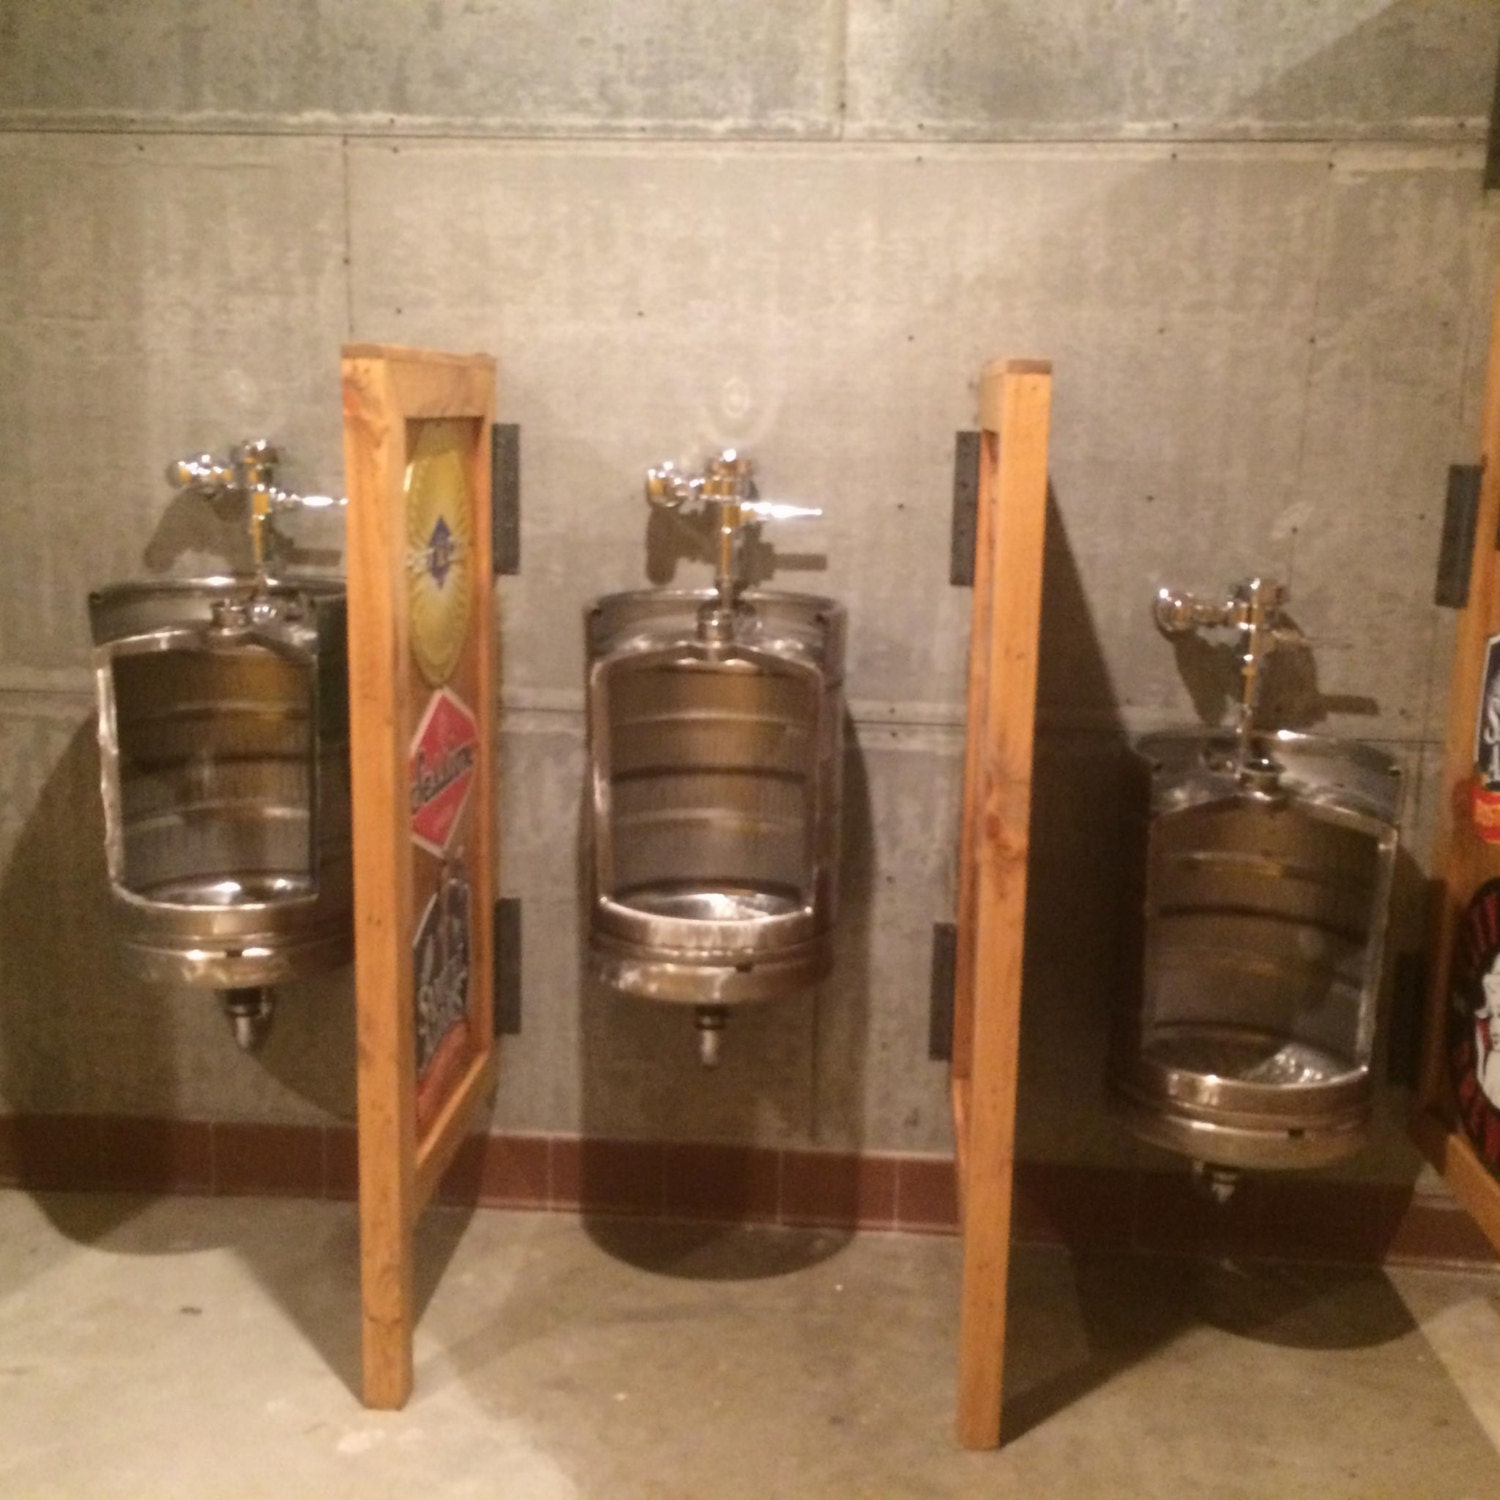 Beer Keg Urinal Stainless Novelty Toilet For Bistro Cafe